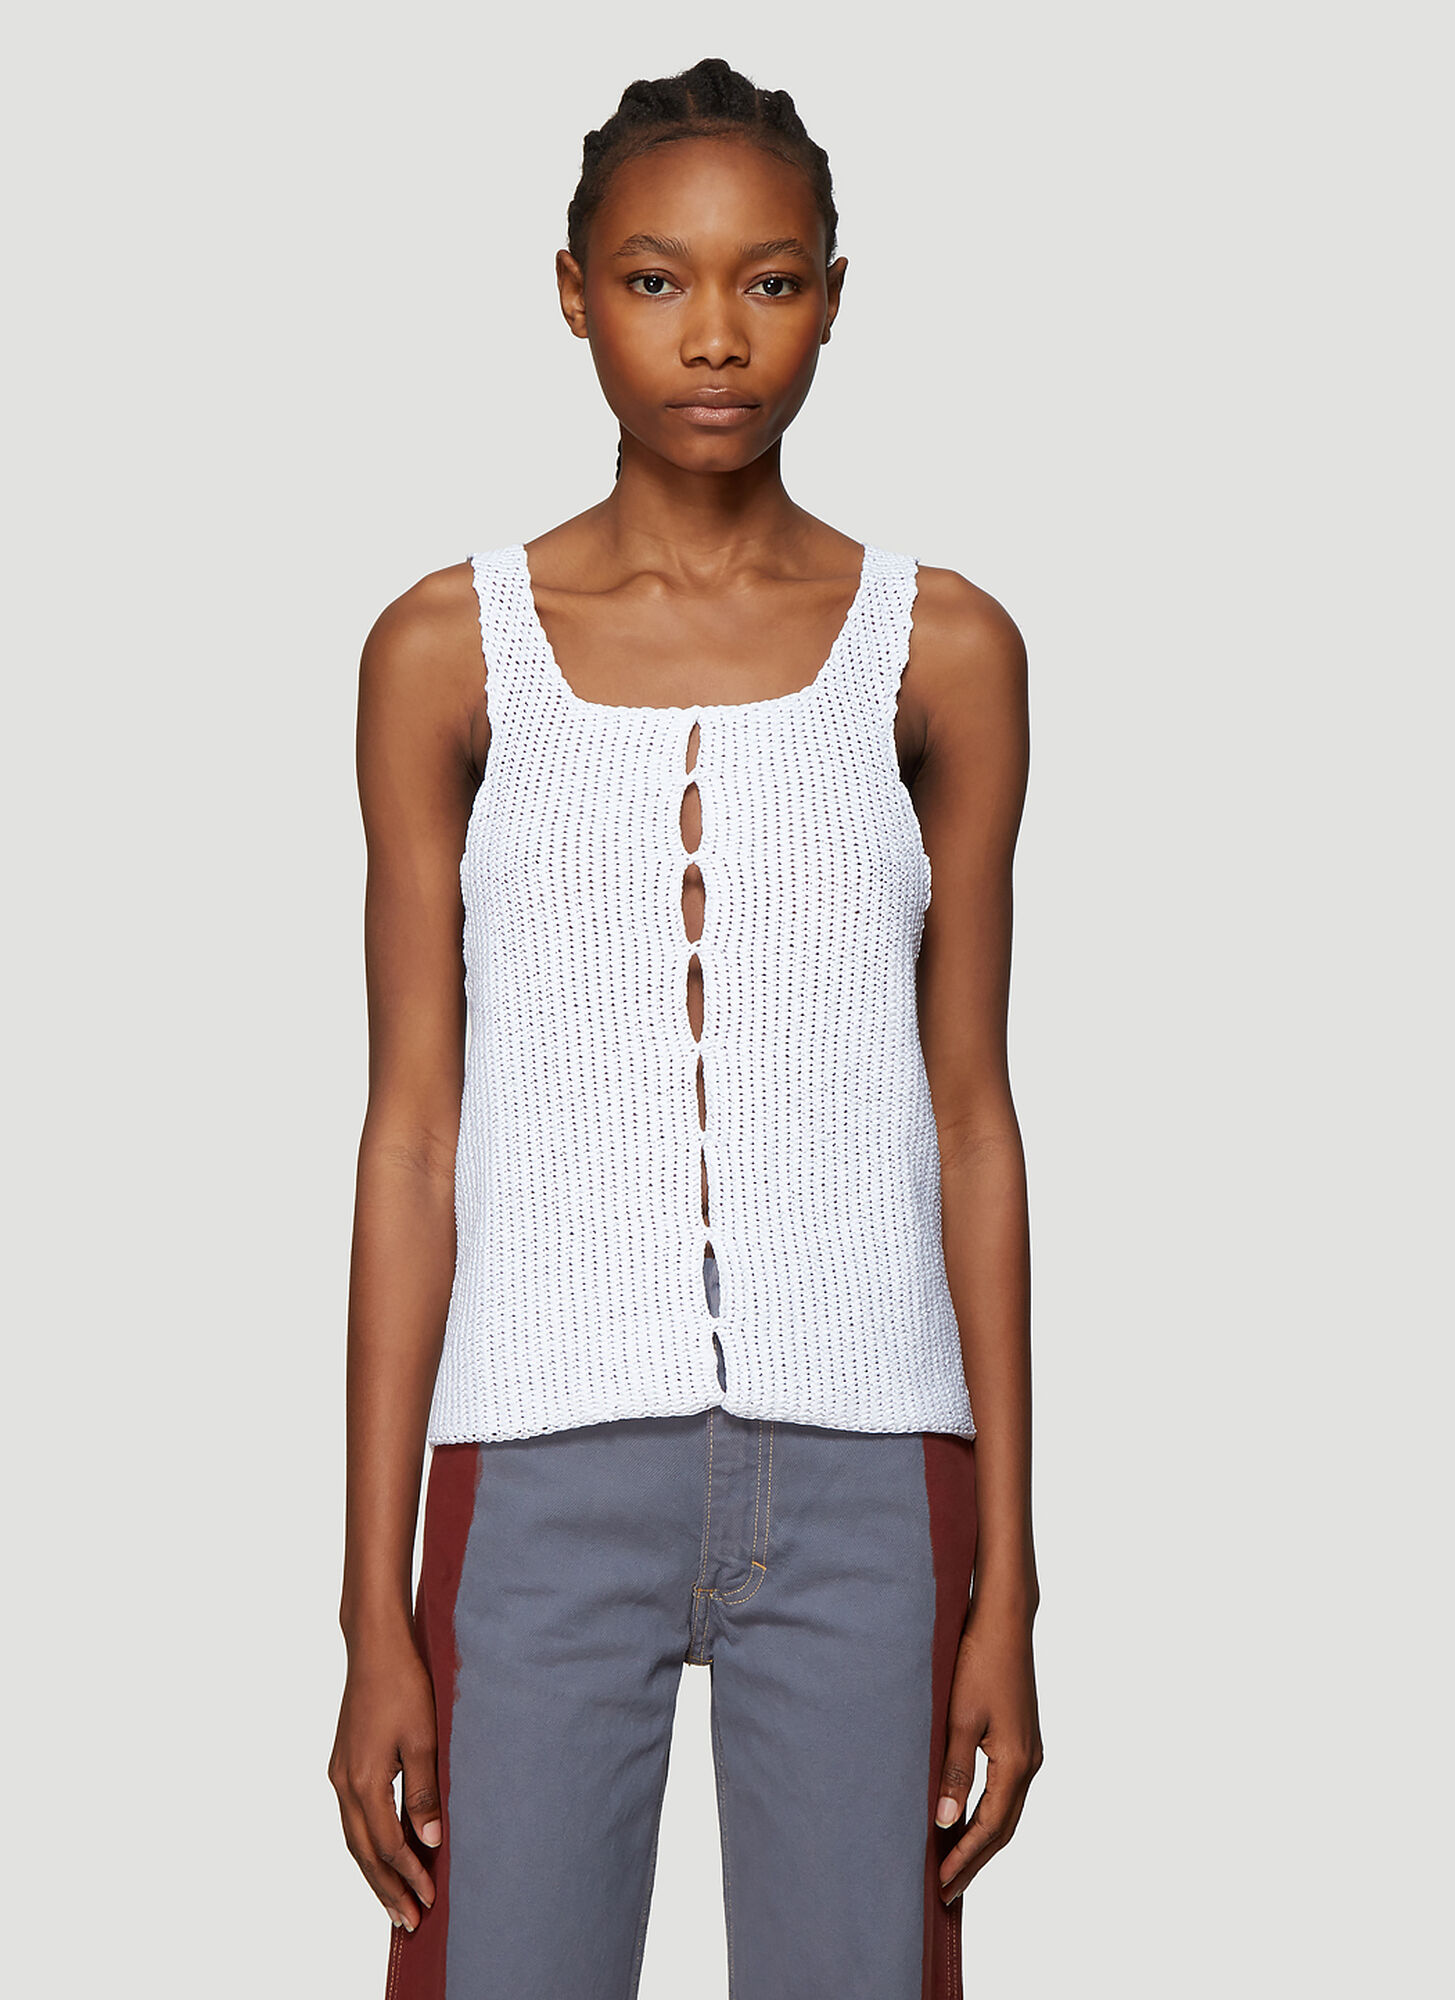 Eckhaus Latta Open Knit Tank Top in White